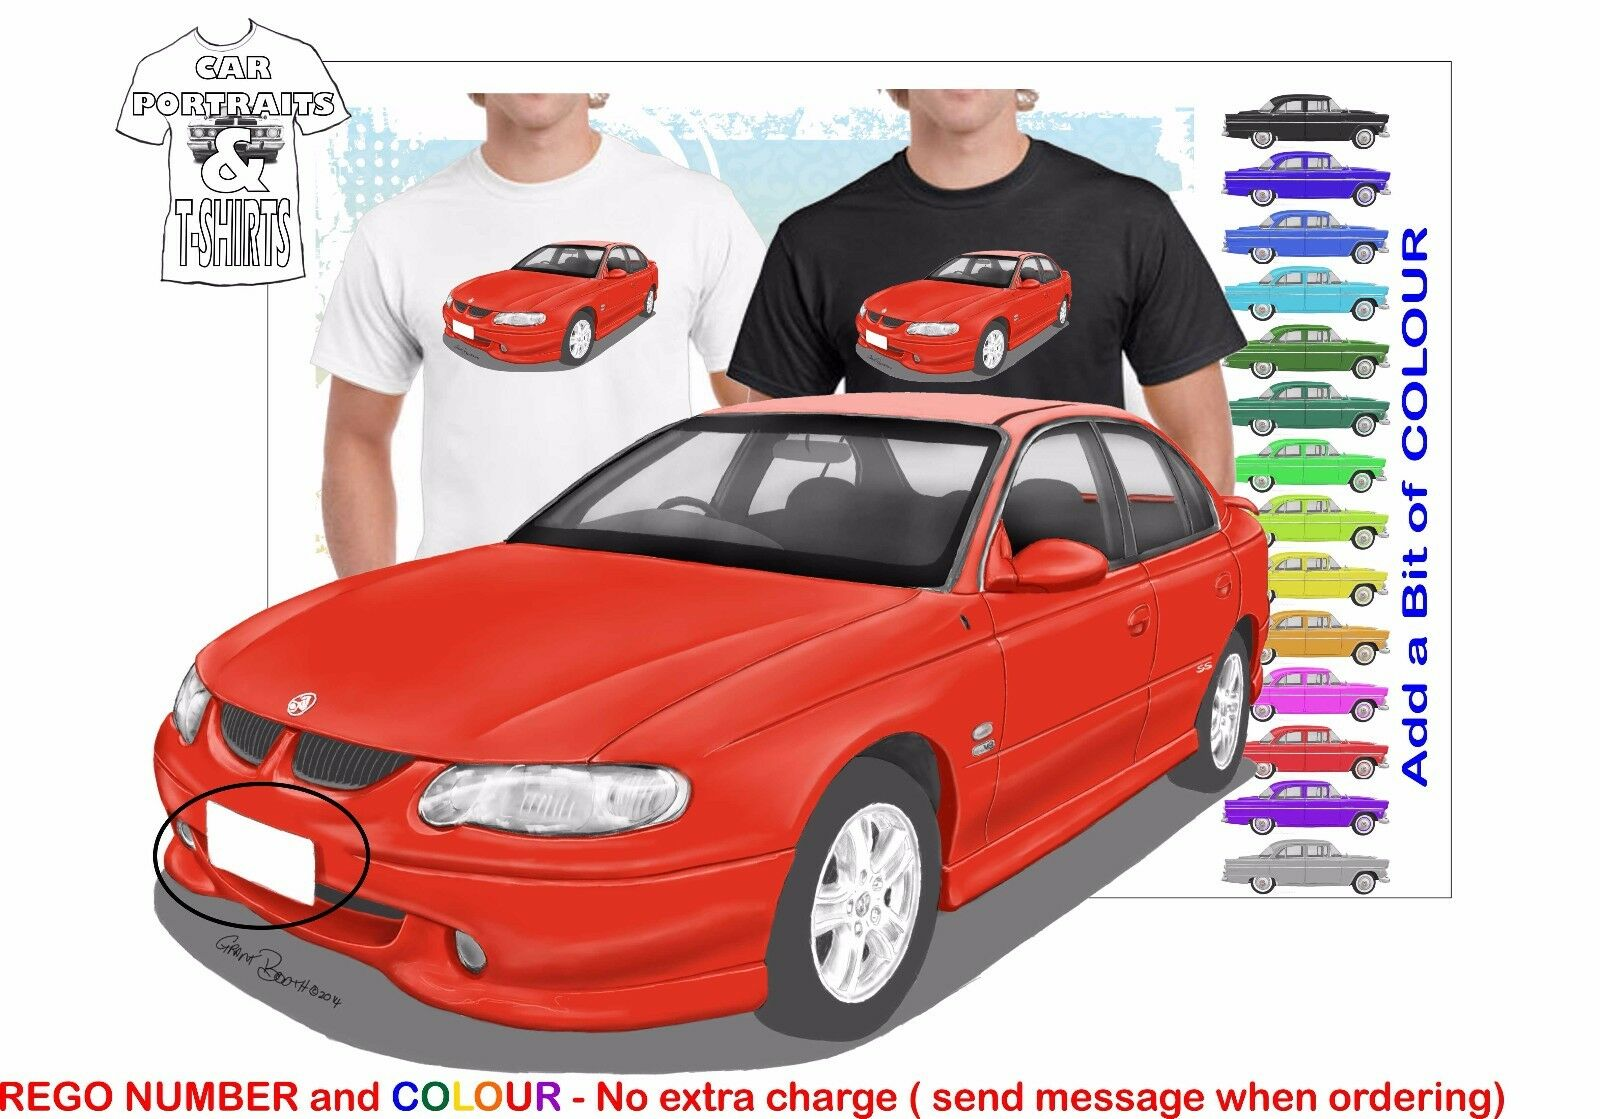 CLASSIC 2000-02 VX SS COMMODORE  ILLUSTRATED T-SHIRT MUSCLE RETRO SPORTS